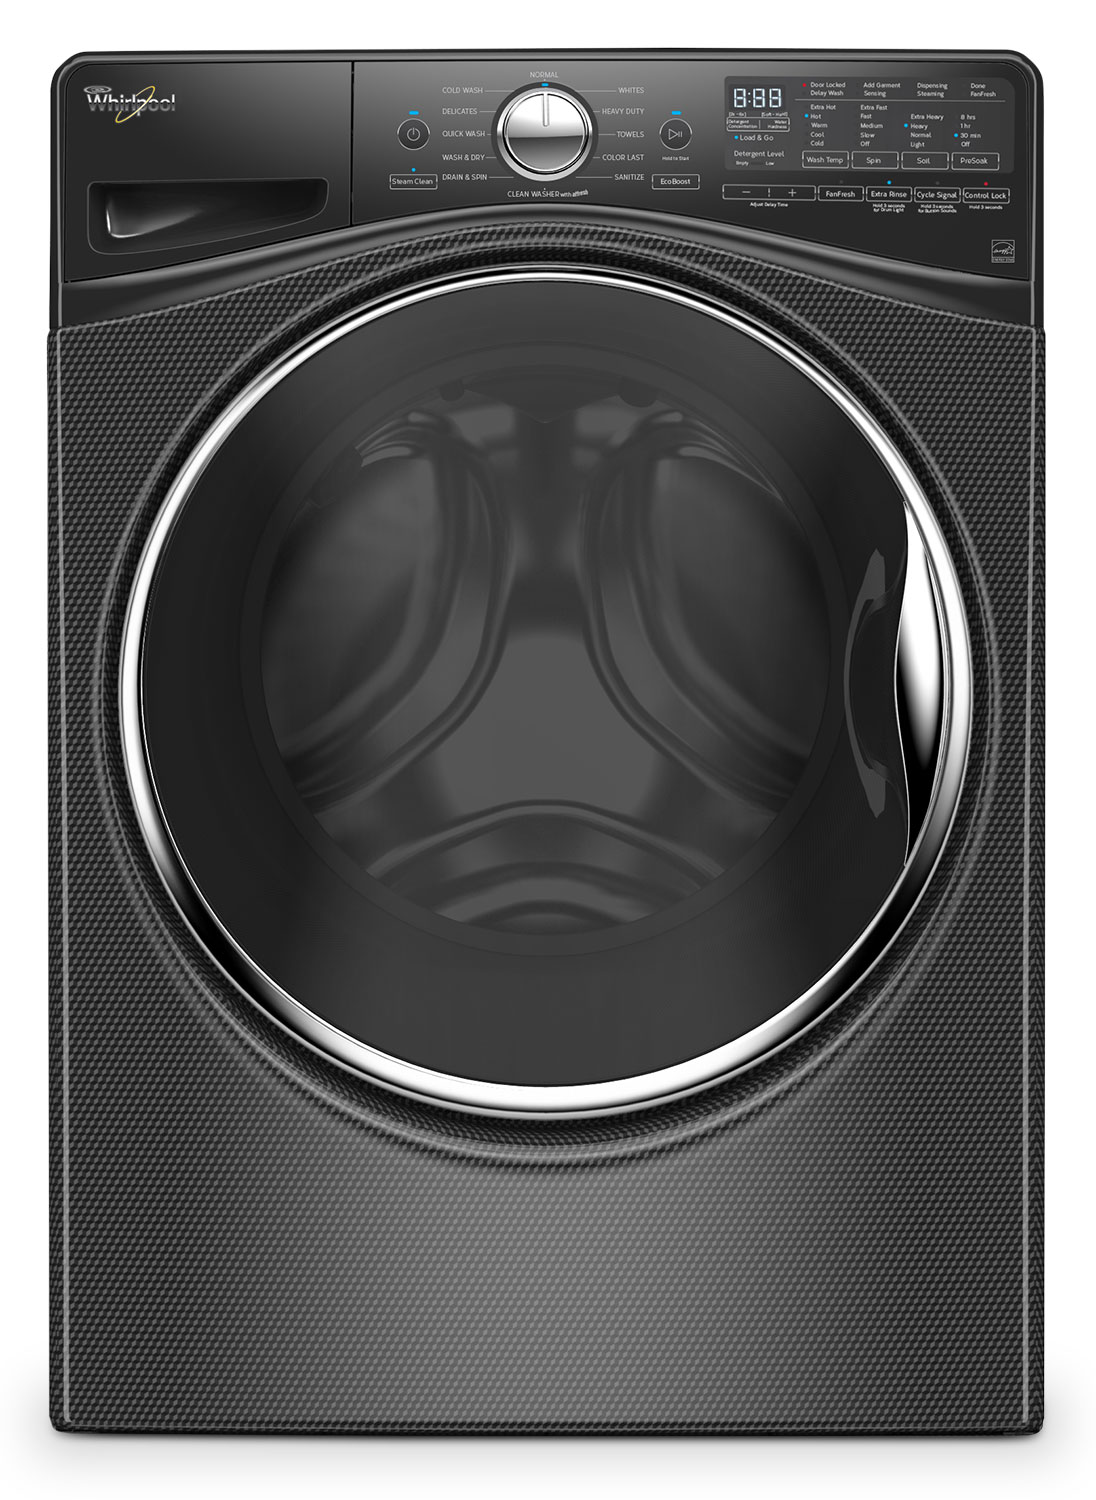 Whirlpool Black Diamond Front-Load Washer (5.2 Cu. Ft.) - WFW92HEFBD